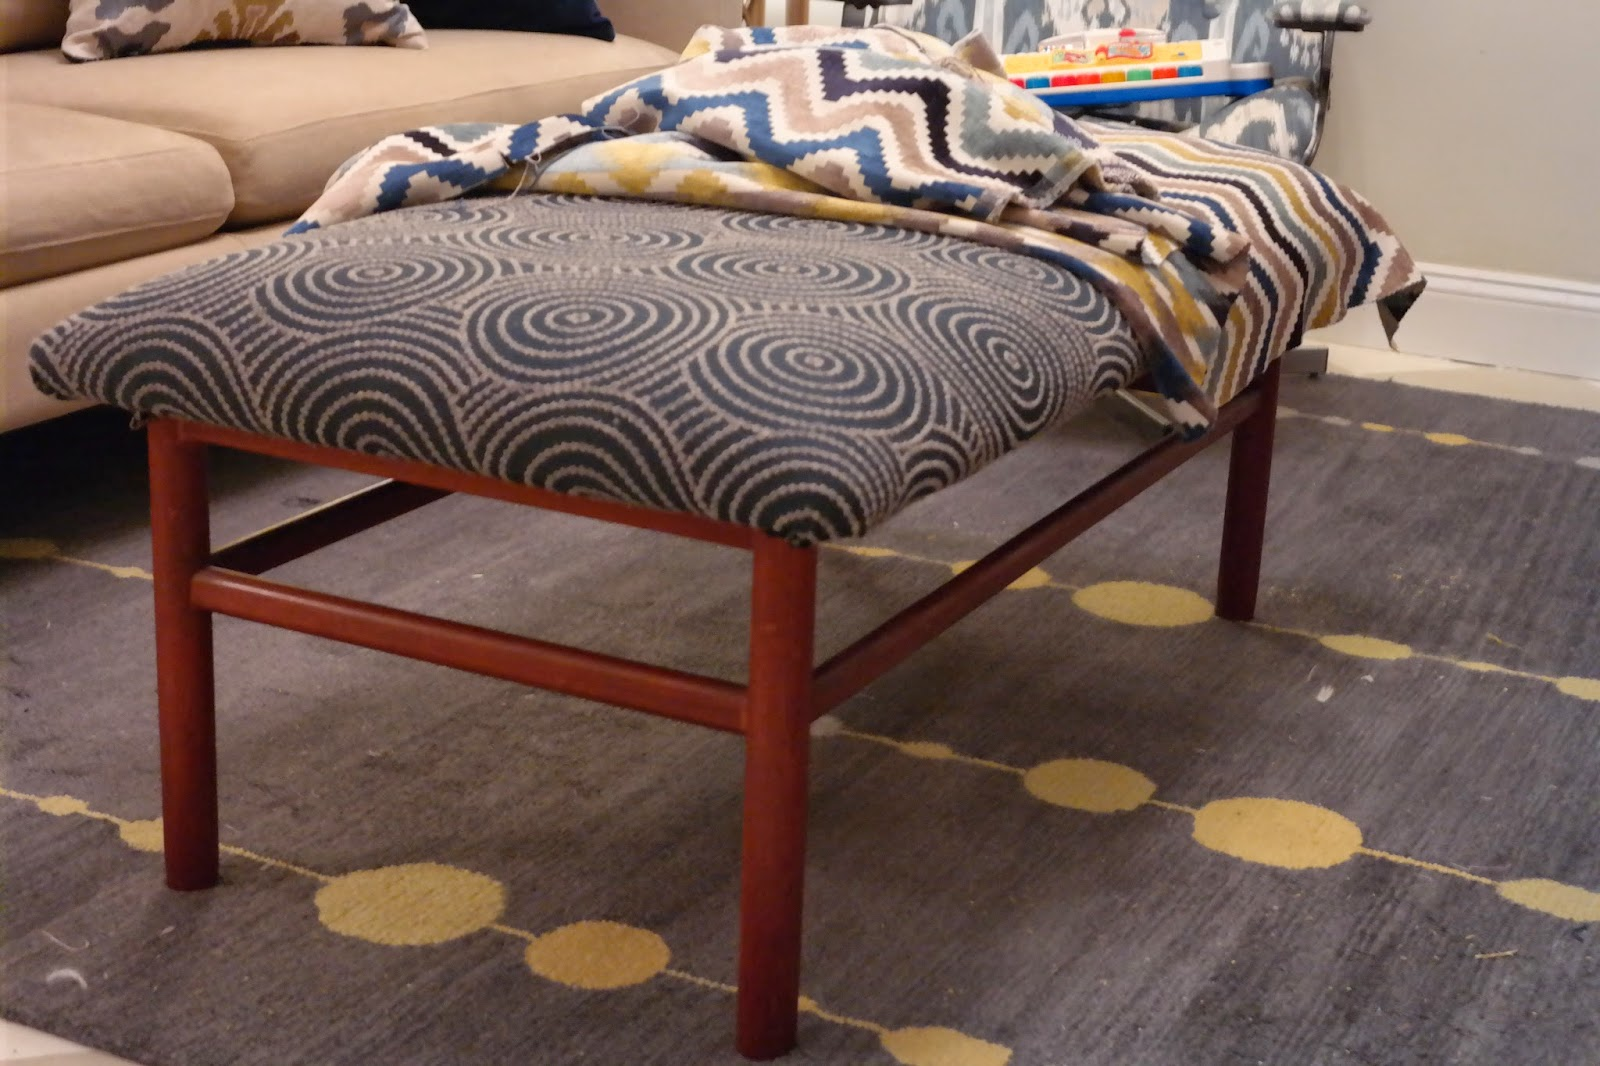 D-I-Y Tutorial: How To Recover An Ottoman or Turn a Coffee Table into an  Ottoman.